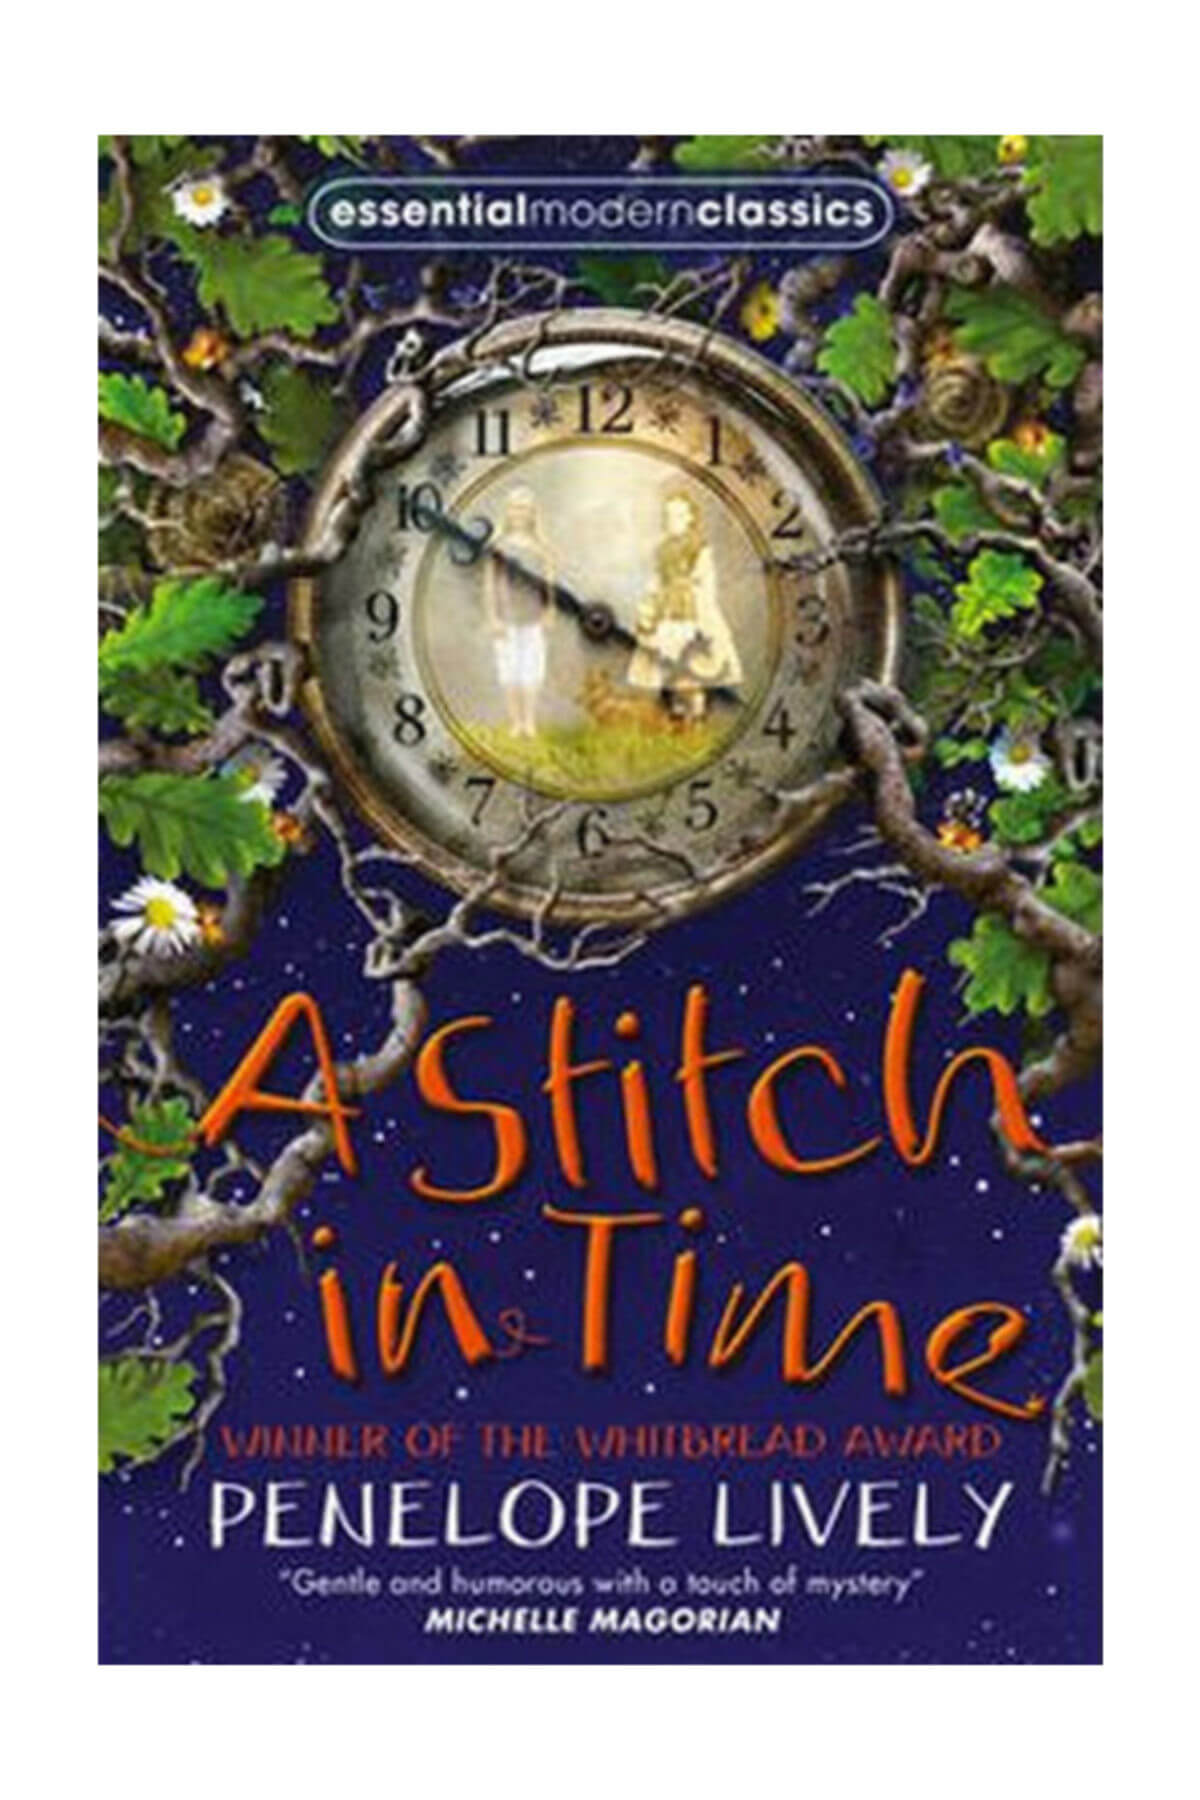 A Stitch in Time (Essential Modern Classics) - Penelope Lively